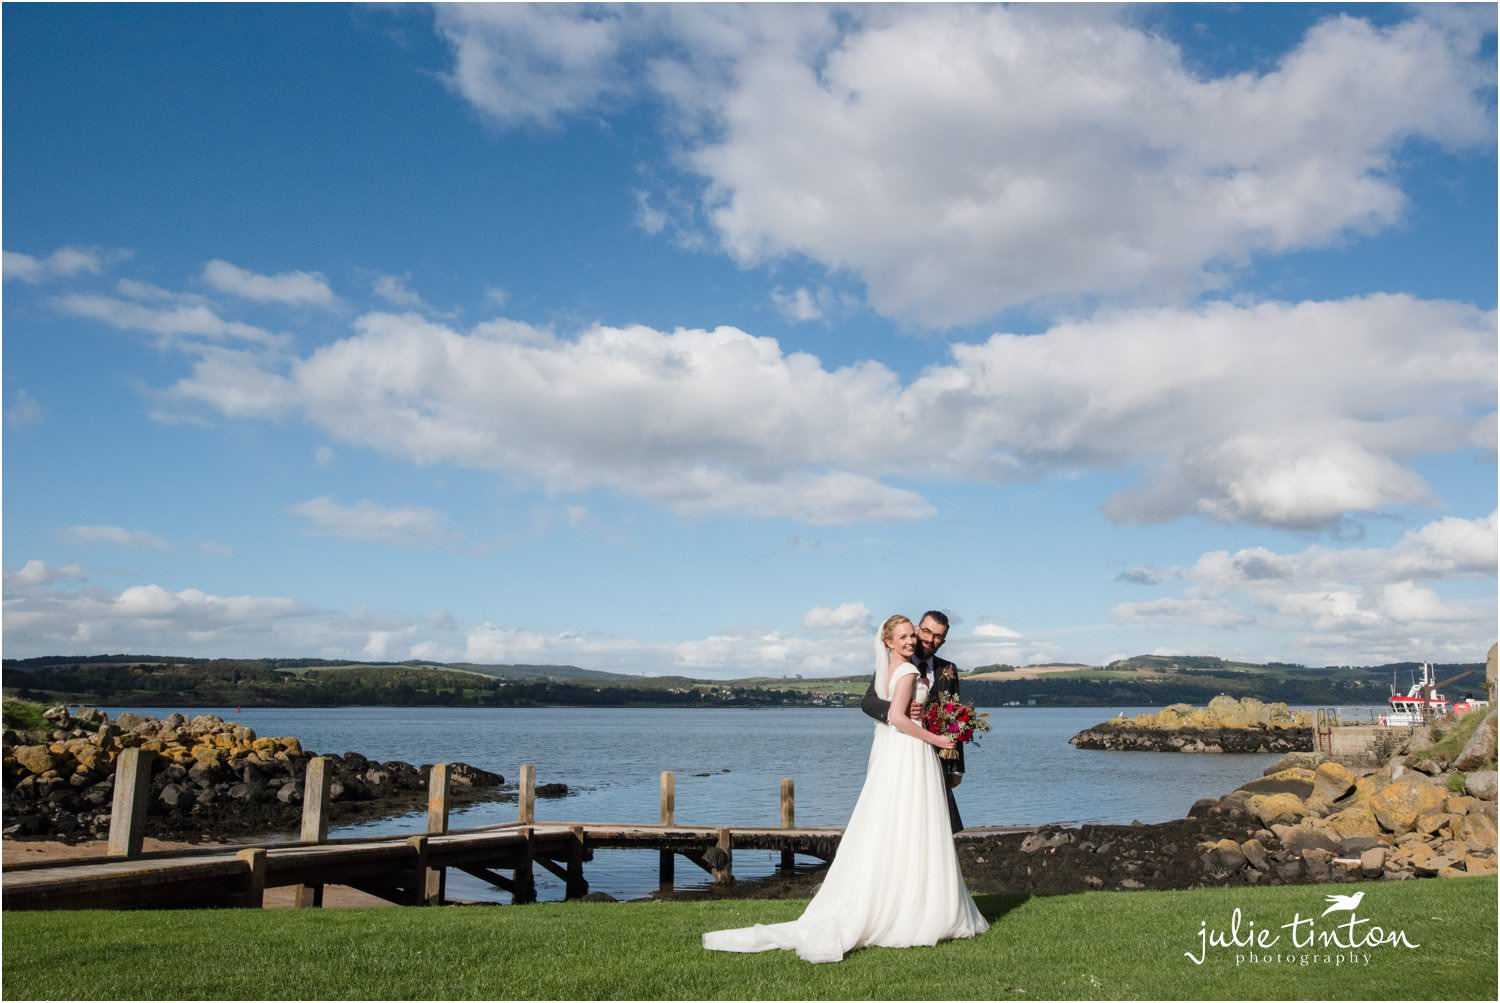 Bride and Groom with blue sky backdrop on Inchcolm Island